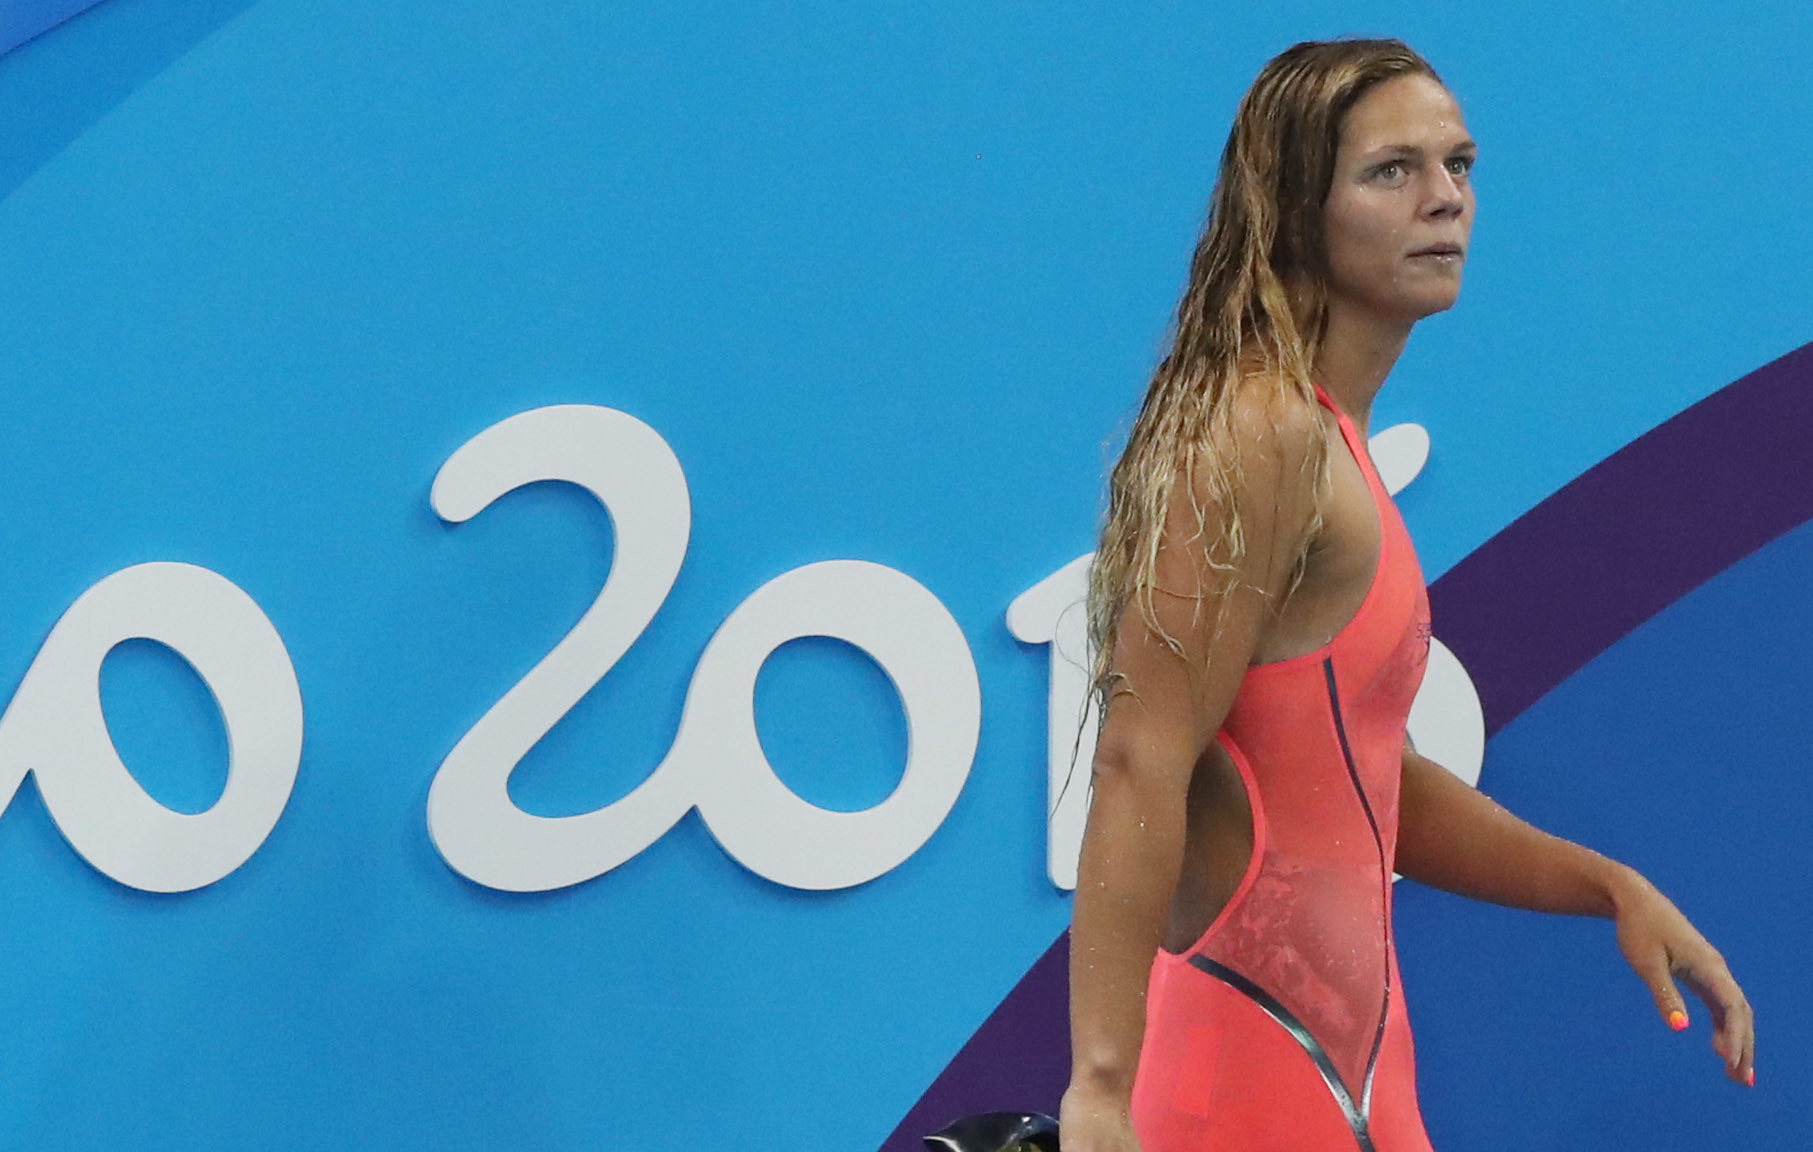 Russia's Yulia Efimova leaves the pool area after competing in a heat of the women's 100-meter breaststroke during the swimming competitions at the 2016 Summer Olympics, Sunday, Aug. 7, 2016, in Rio de Janeiro, Brazil. (AP Photo/Lee Jin-man)